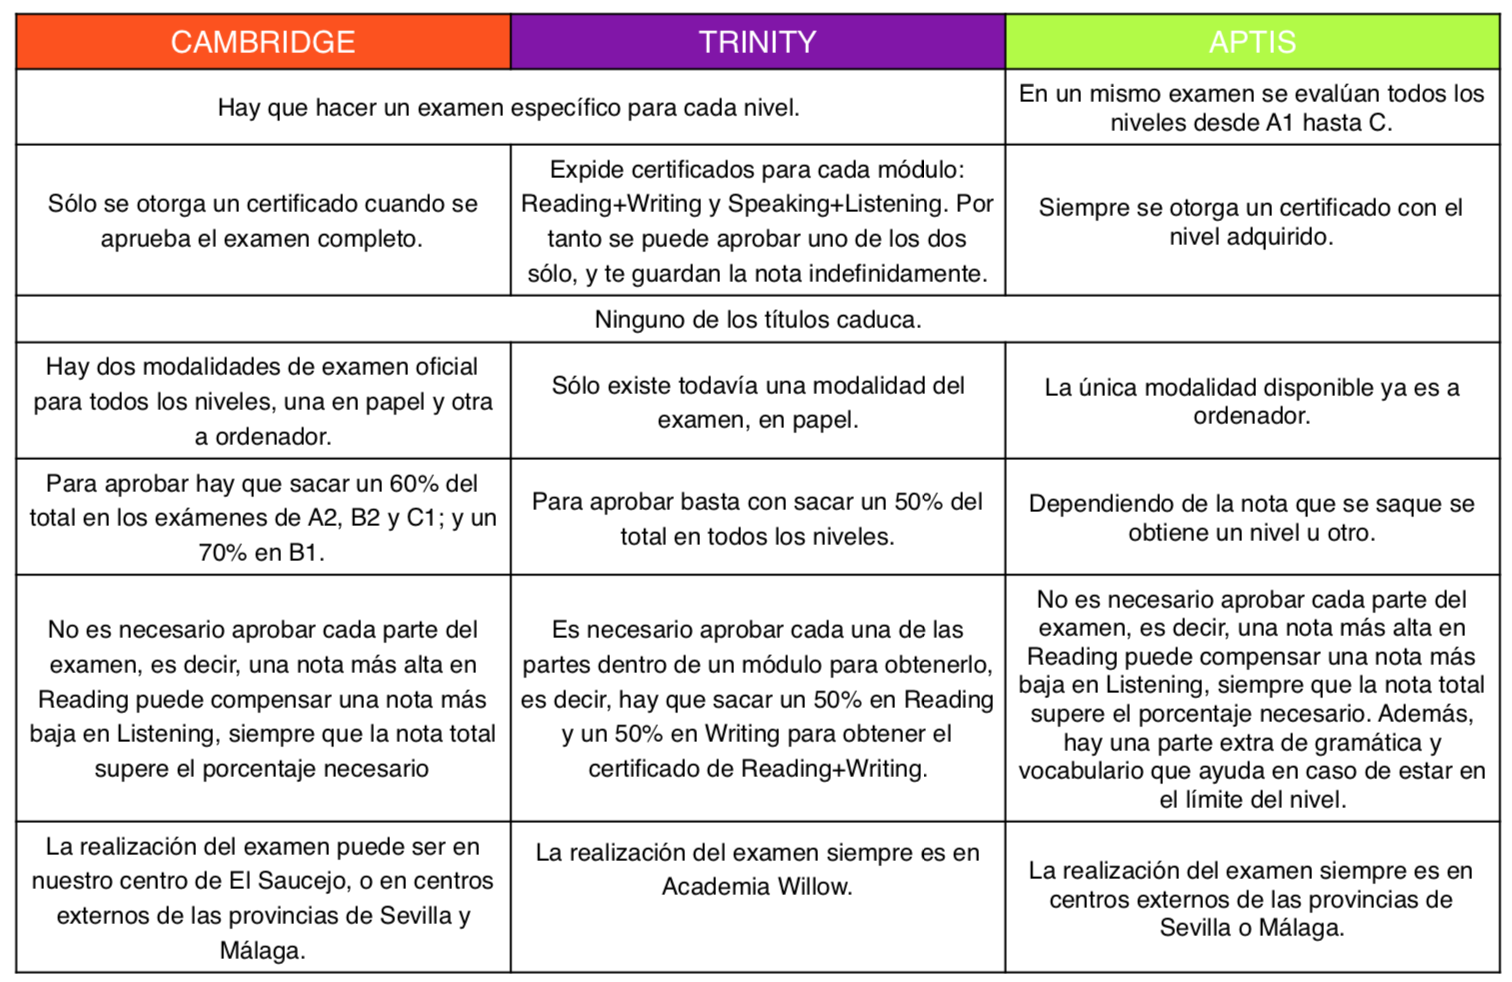 Diferencias cambridge, trinity, aptis 1